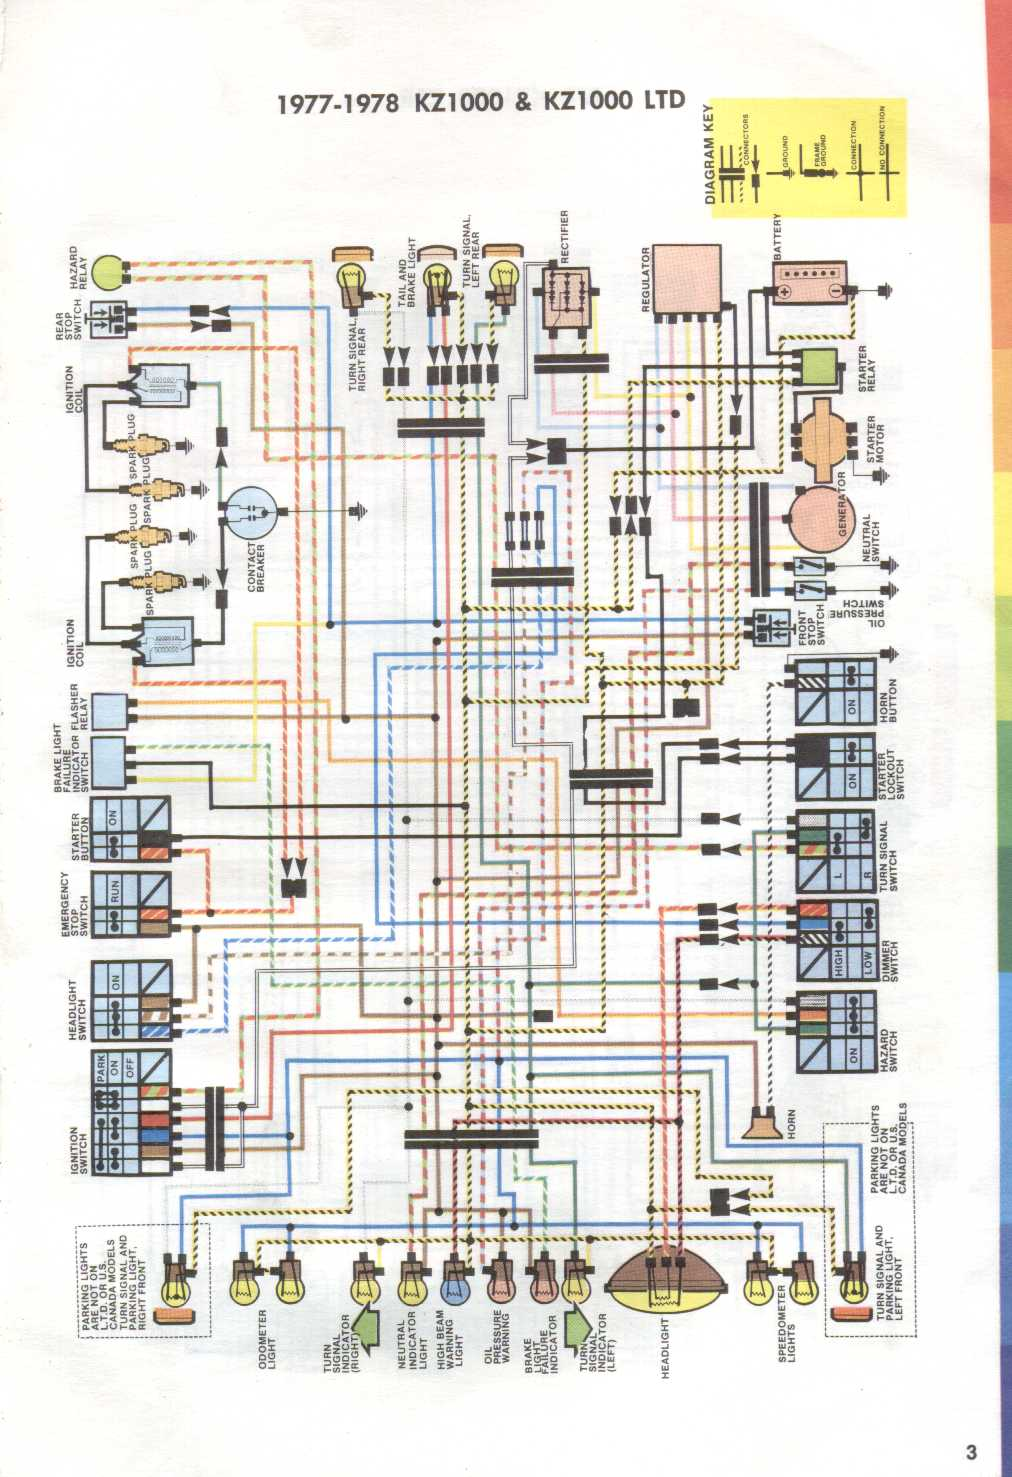 Kawasaki_KZ1000 LTD_Wiring_Diagram_1977 1978 motorcycle wiring diagrams 1978 gs750 wiring diagram at edmiracle.co